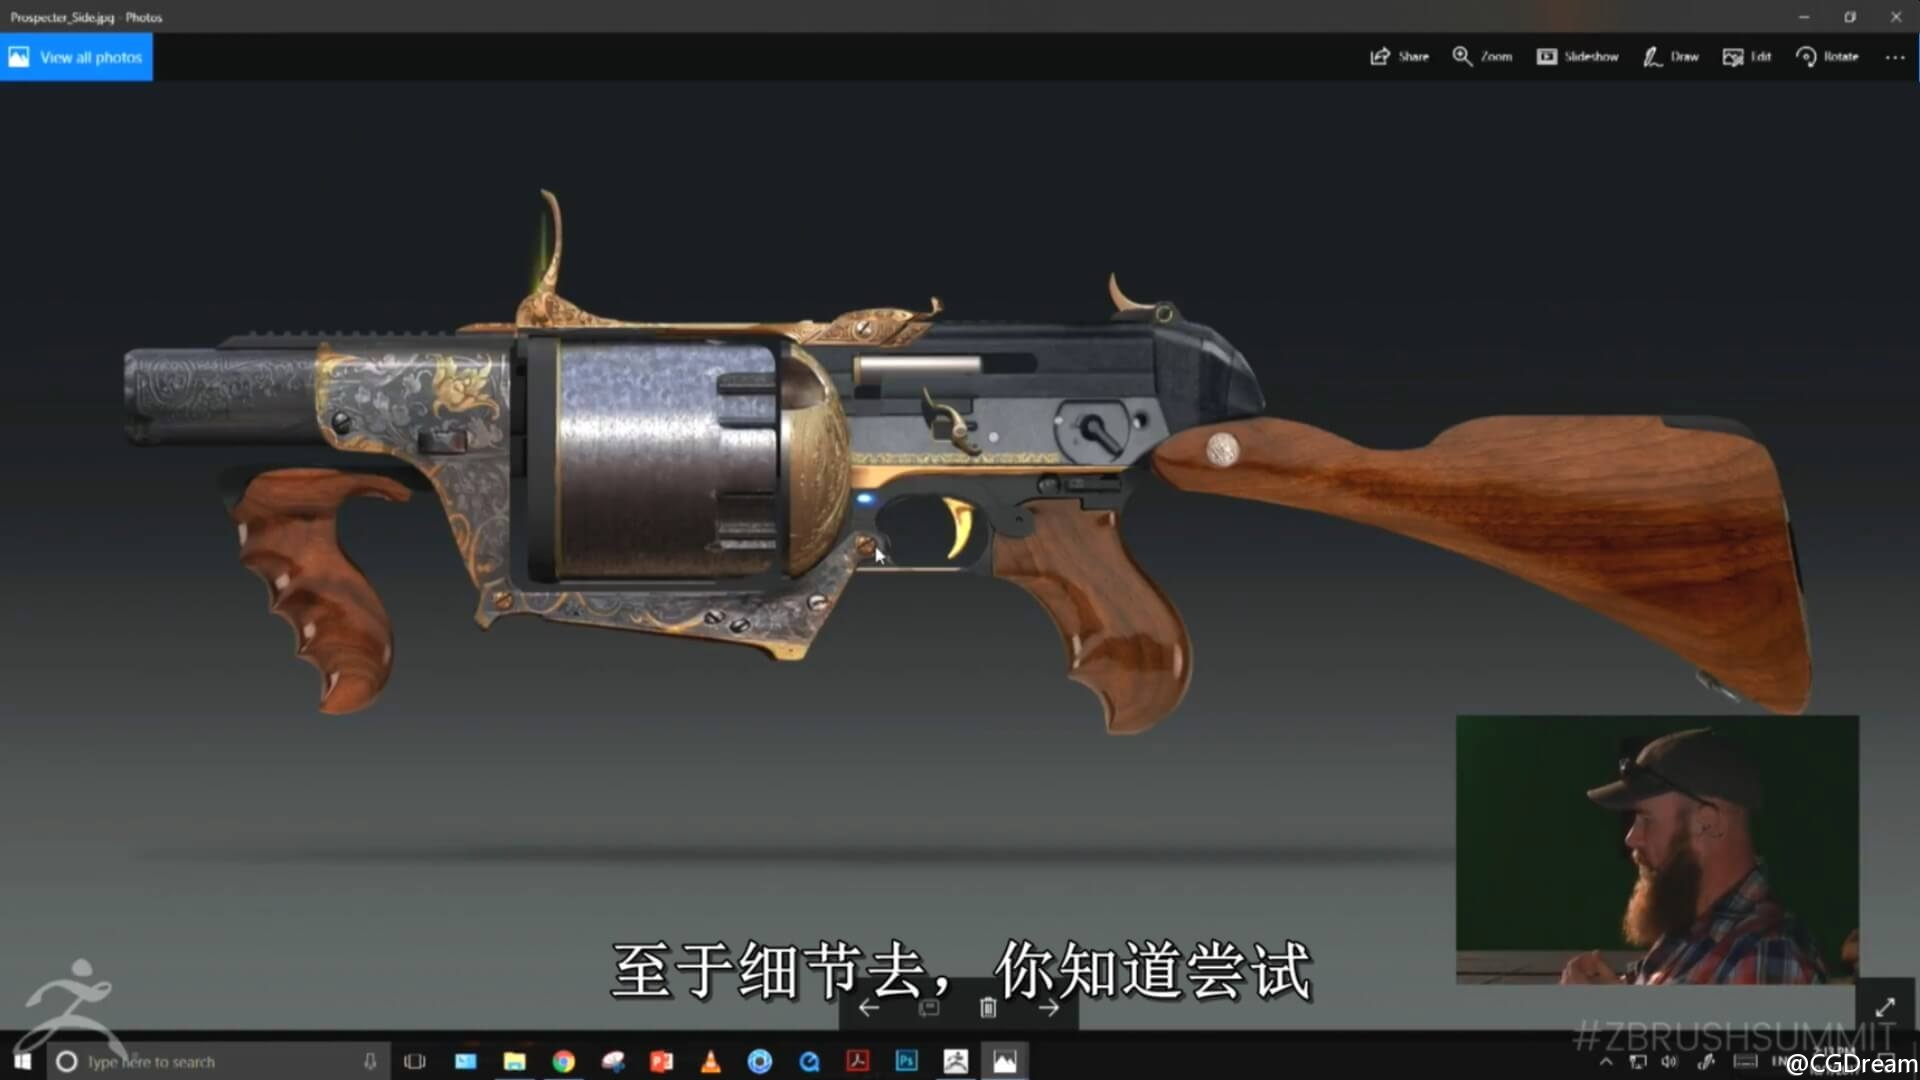 ZBrush雕刻手枪3D模型教程 - Weapons of Destiny 2 with Bungie